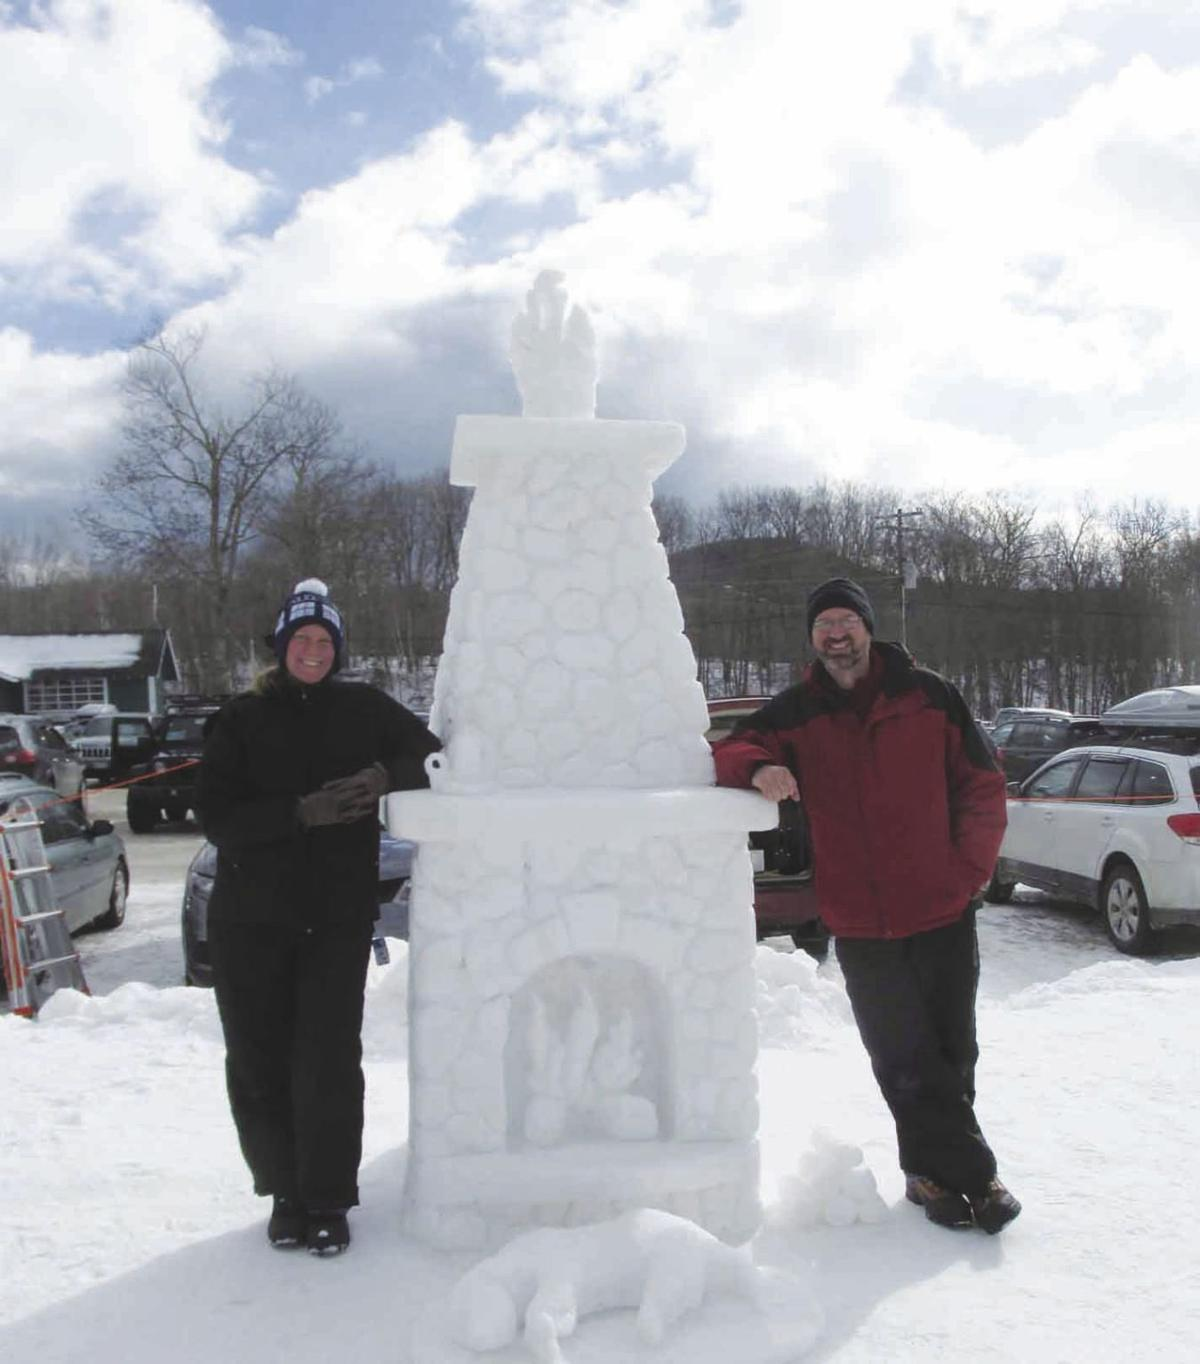 Snow sculpture contest at Black Mountain through Sunday | Local News ...